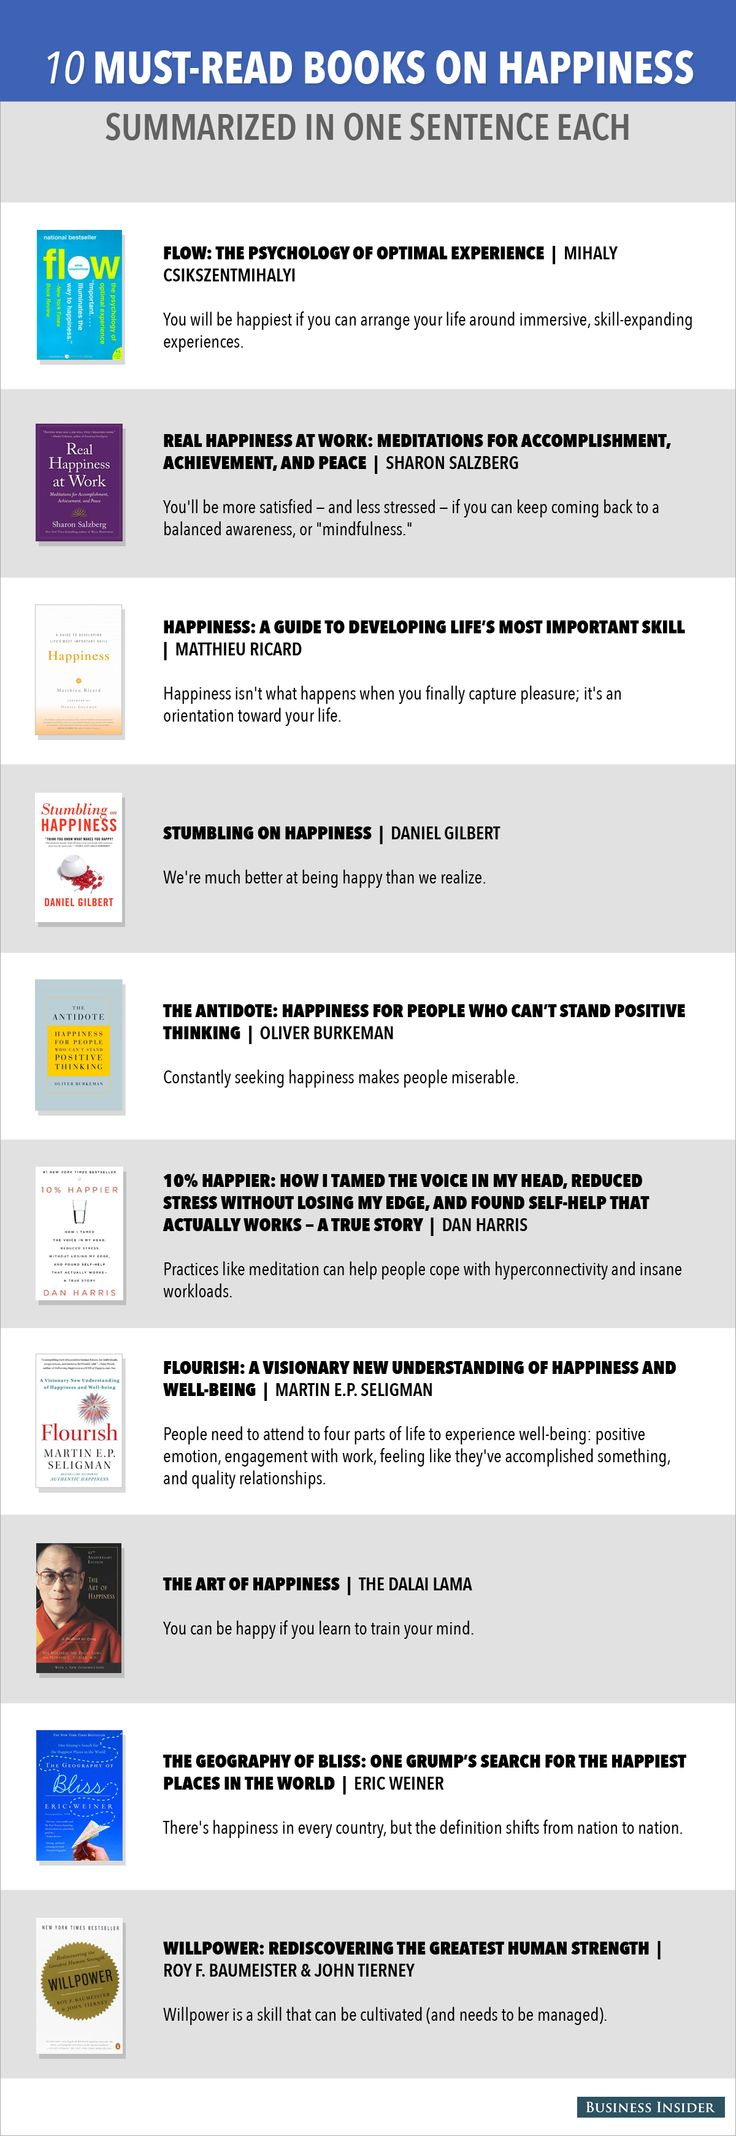 10 Books About Happiness Summarized In One Sentence Each  Read more: http://www.businessinsider.com/must-read-books-on-happiness-2014-9#ixzz3ESIYtWDB